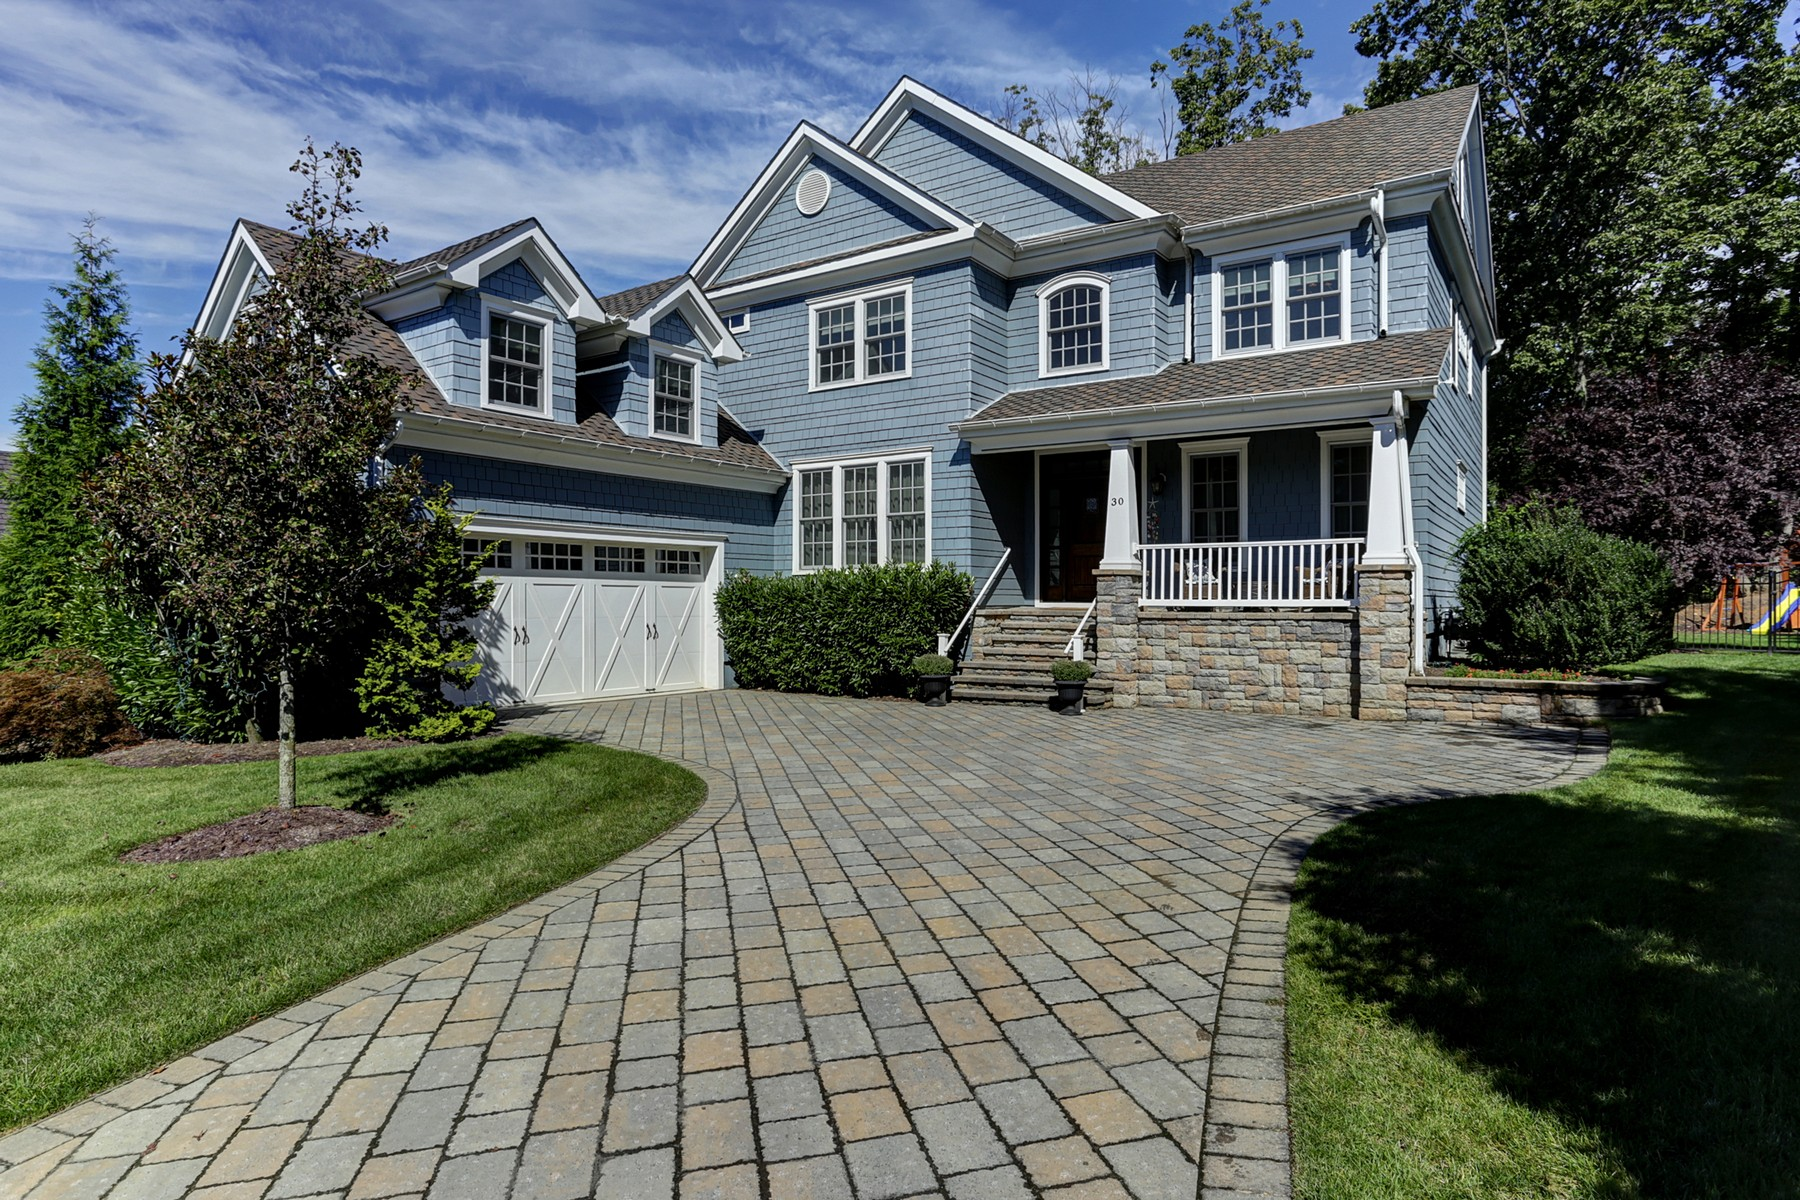 Casa Unifamiliar por un Venta en Young Navesink Colonial 30 Ridgeview Ave Atlantic Highlands, Nueva Jersey, 07716 Estados Unidos